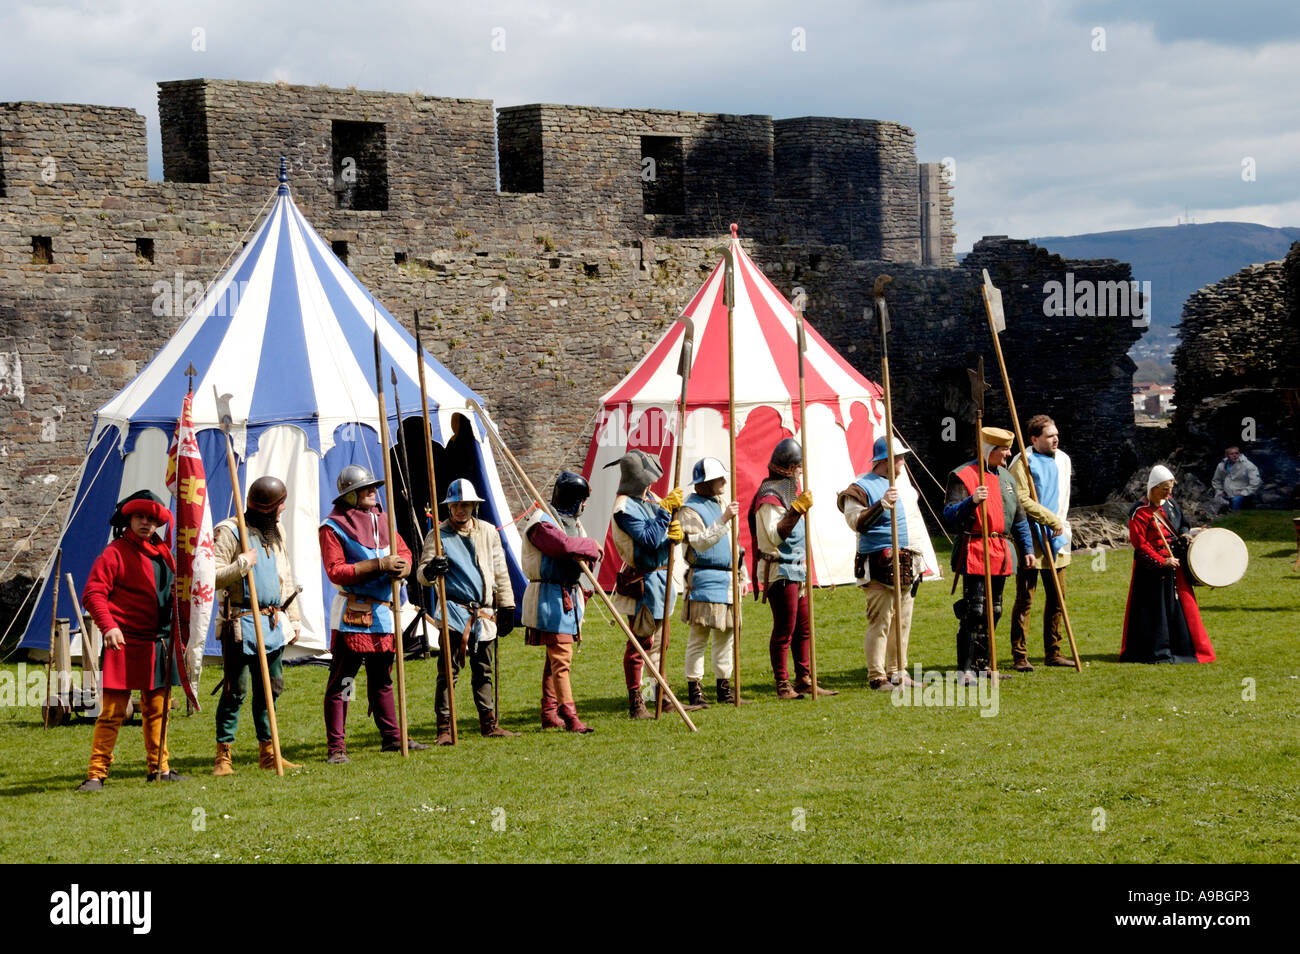 The Company of Chivalry reenactment of medieval life in the year 1370 at Caerphilly Castle South Wales UK - Stock Image